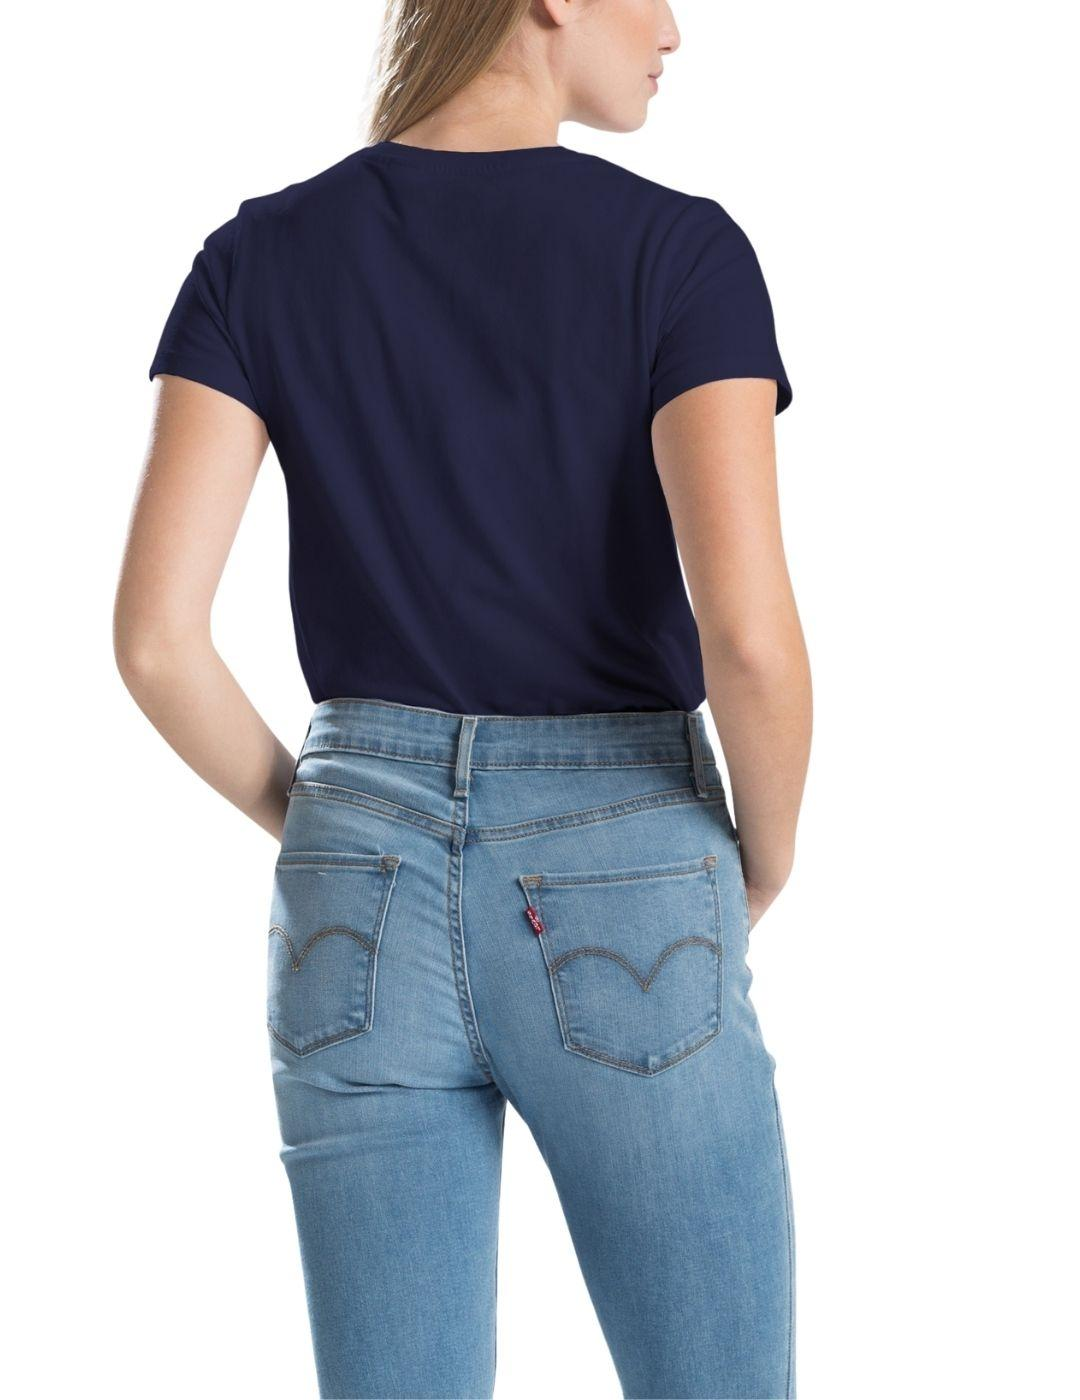 Camiseta Levis The Perfect Tee Sea Captain Blue de mujer